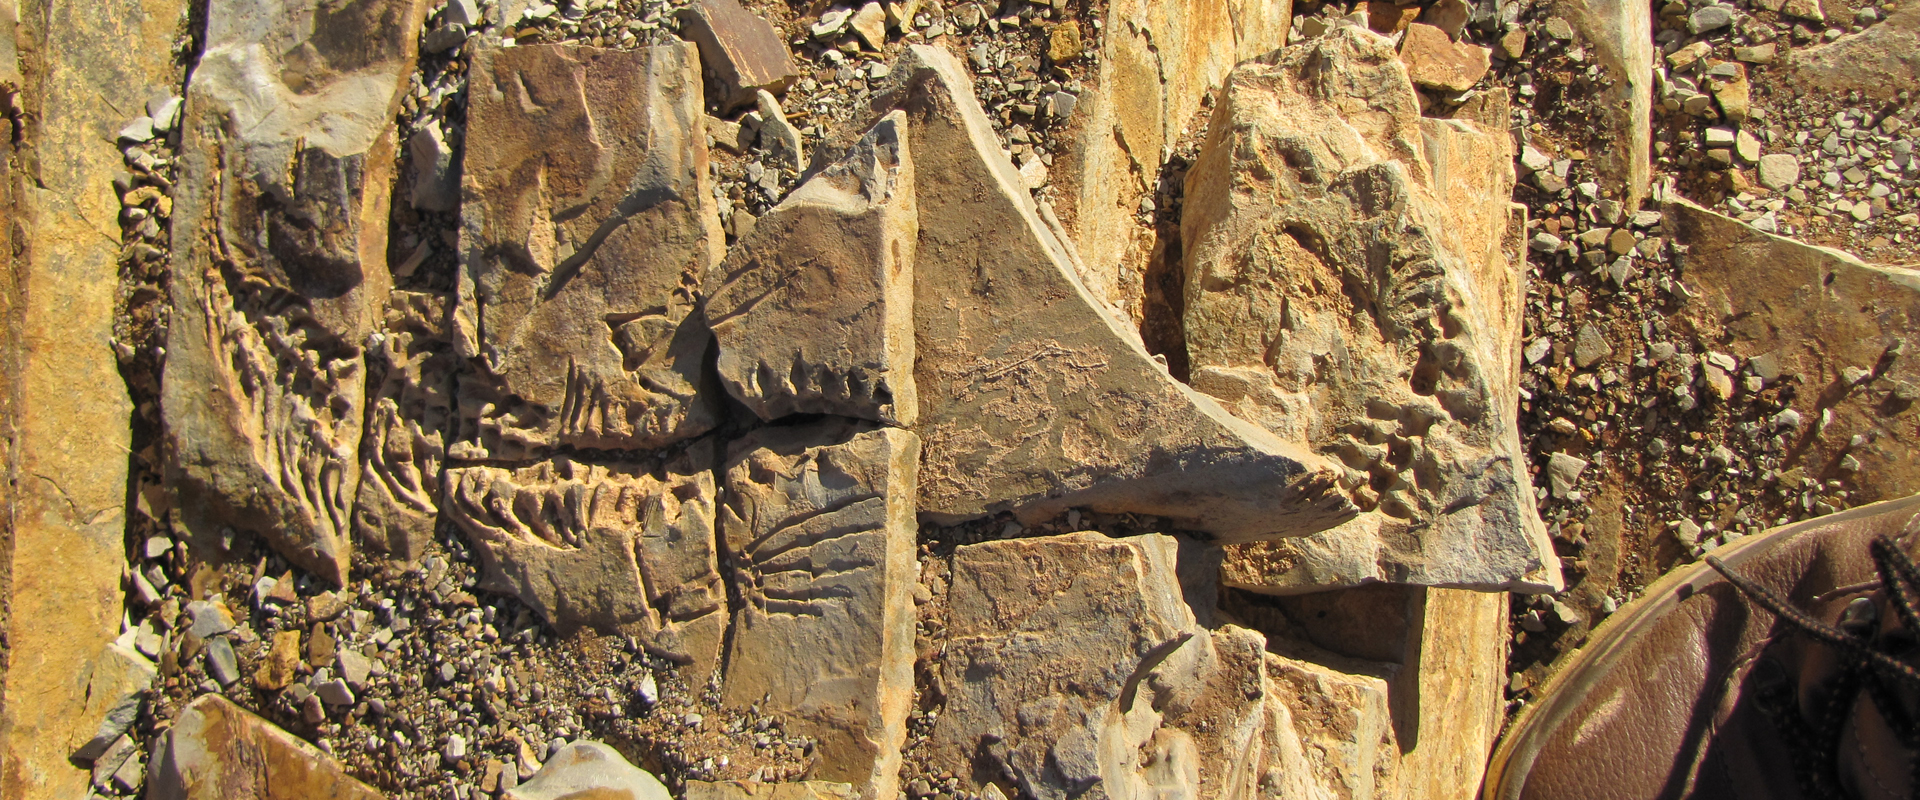 Facts On Dinosaurs And Other Fossils In Namibia Travel News Namibia